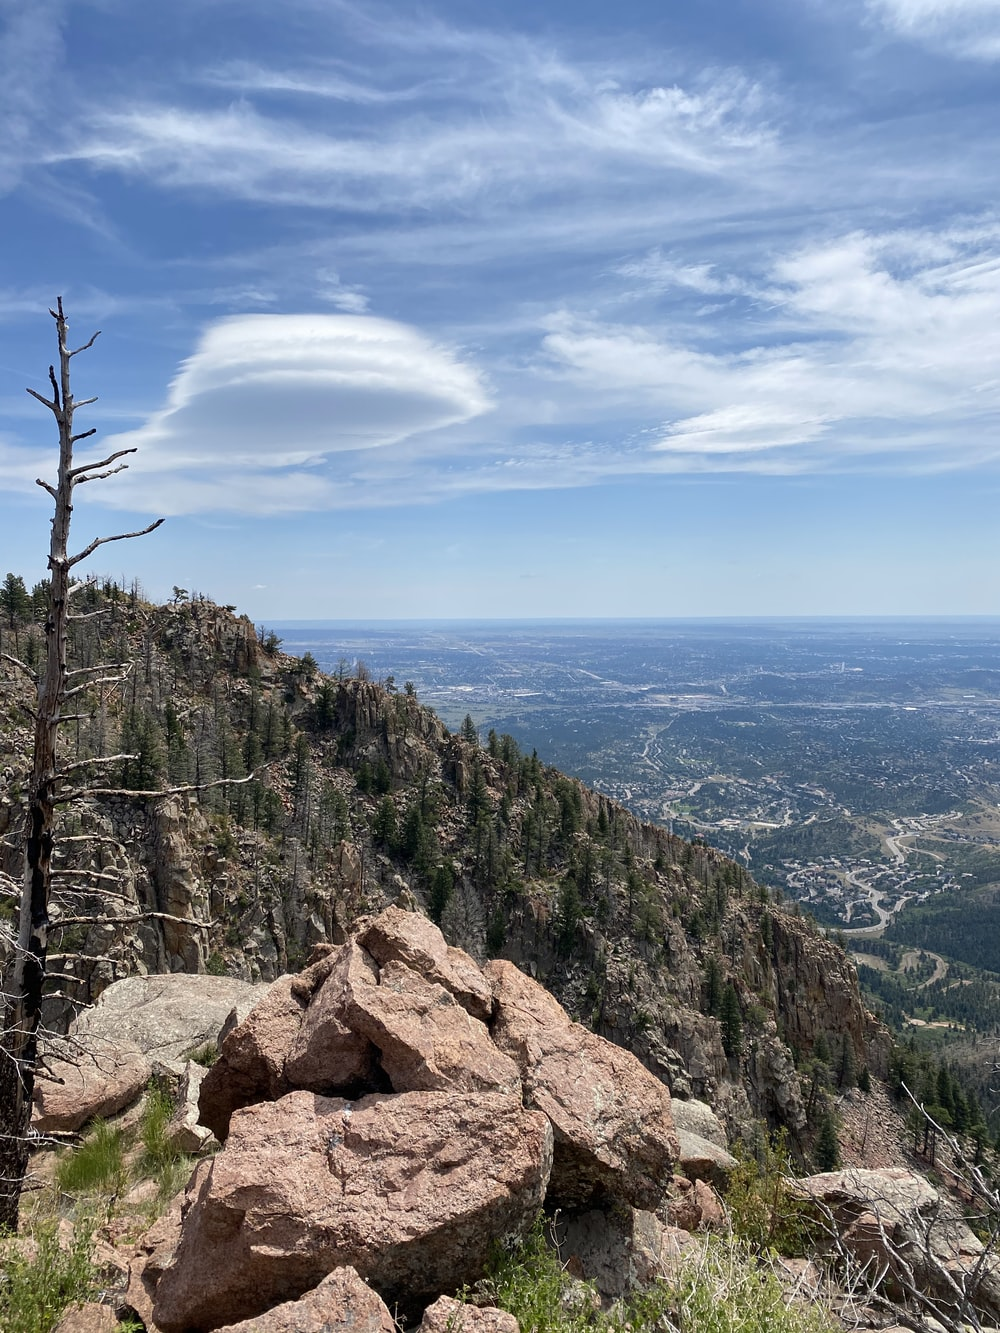 green trees on brown rocky mountain under blue sky during daytime